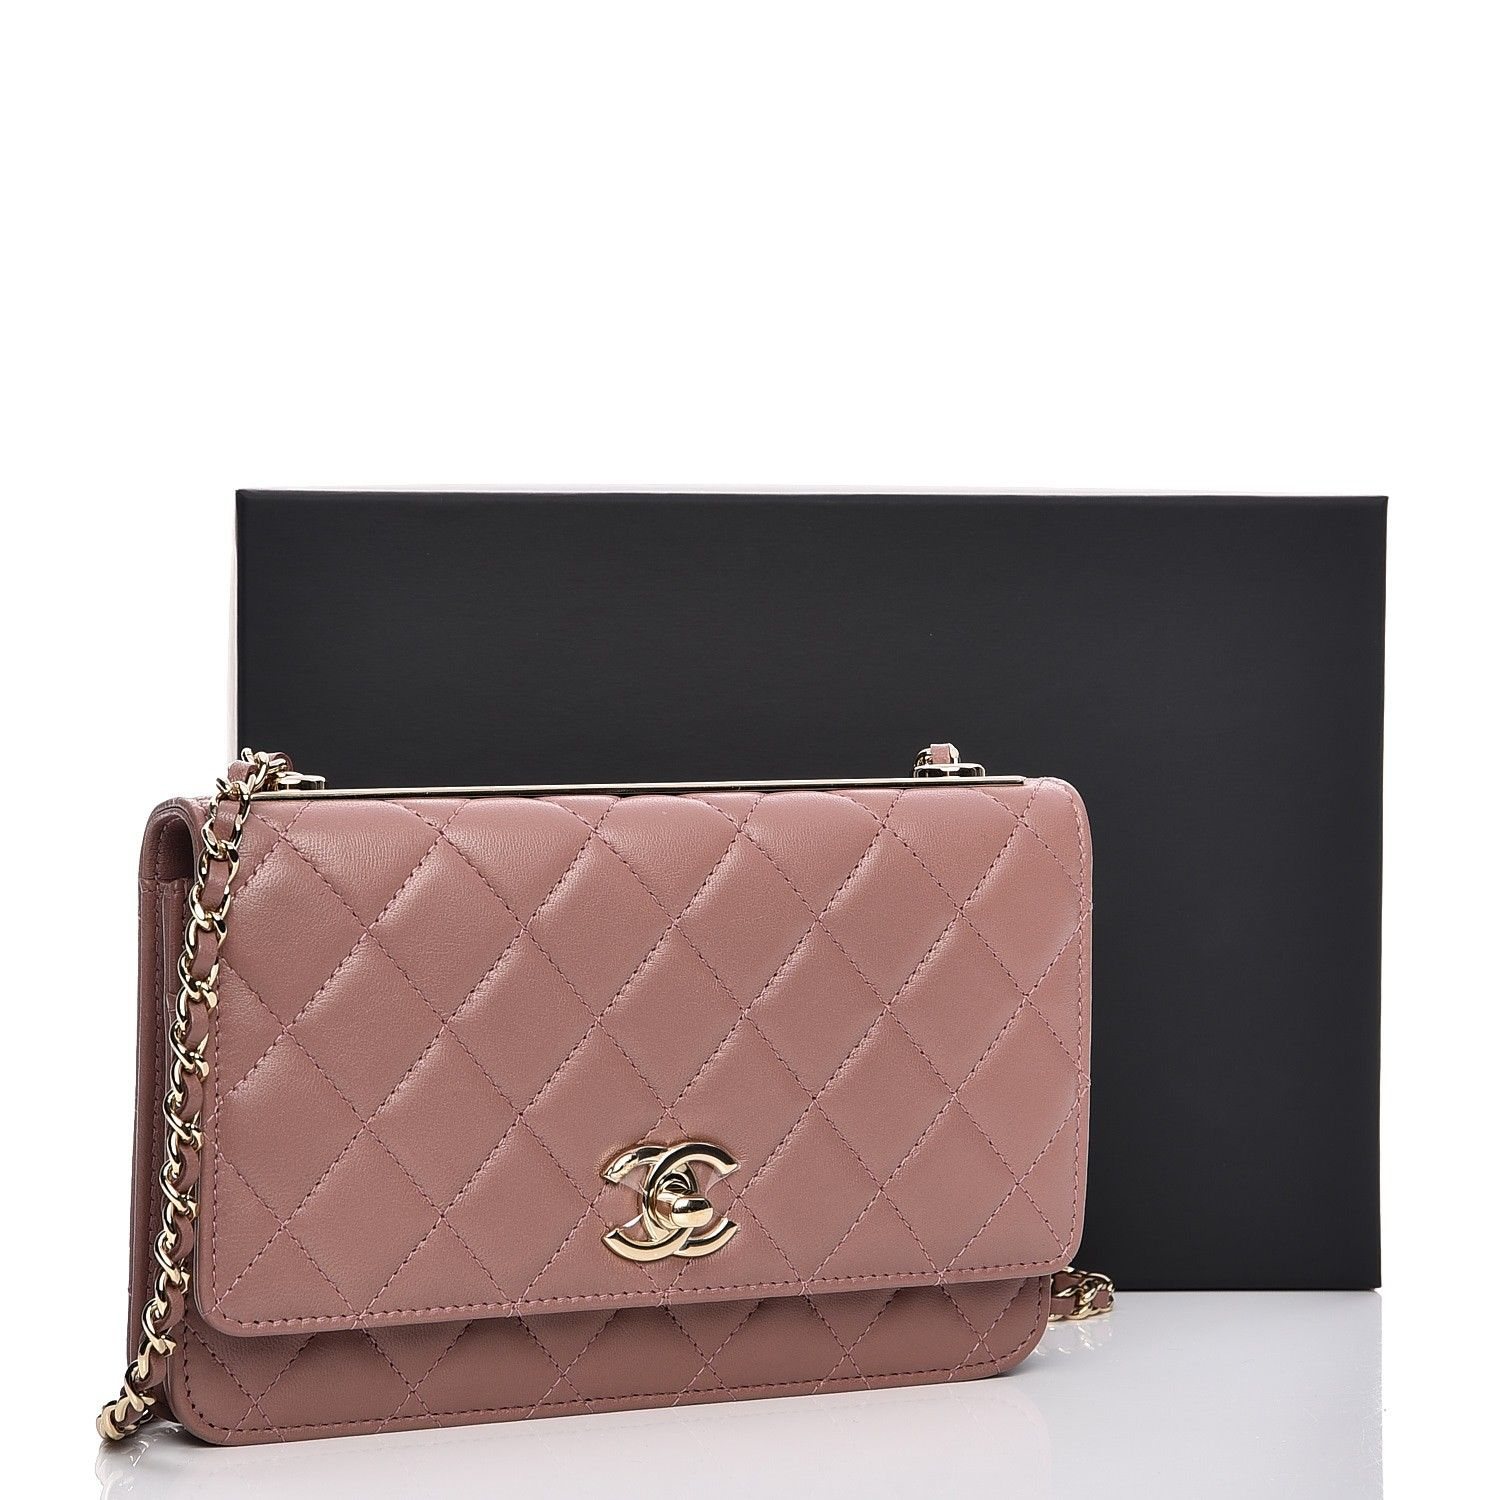 316c9794517071 Lambskin Leather · Gold Chains · Shoulder Strap · This authentic CHANEL  Lambskin Quilted Trendy CC Wallet On Chain WOC in Pink. This wallet